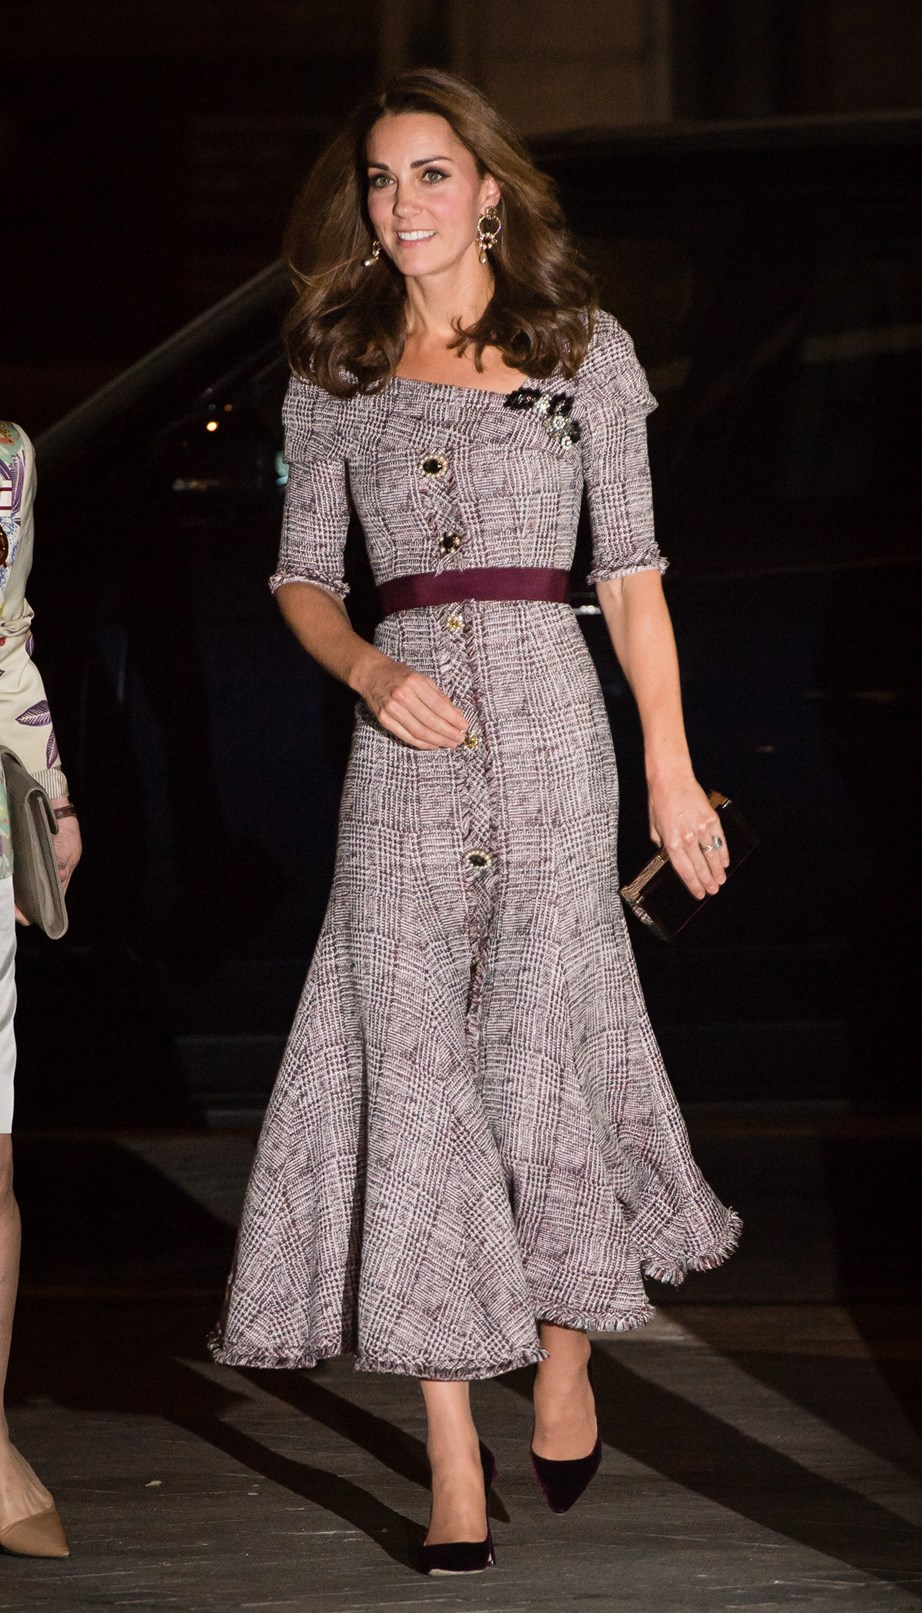 Duchess Kate has one strengthening move she uses daily - the plank!